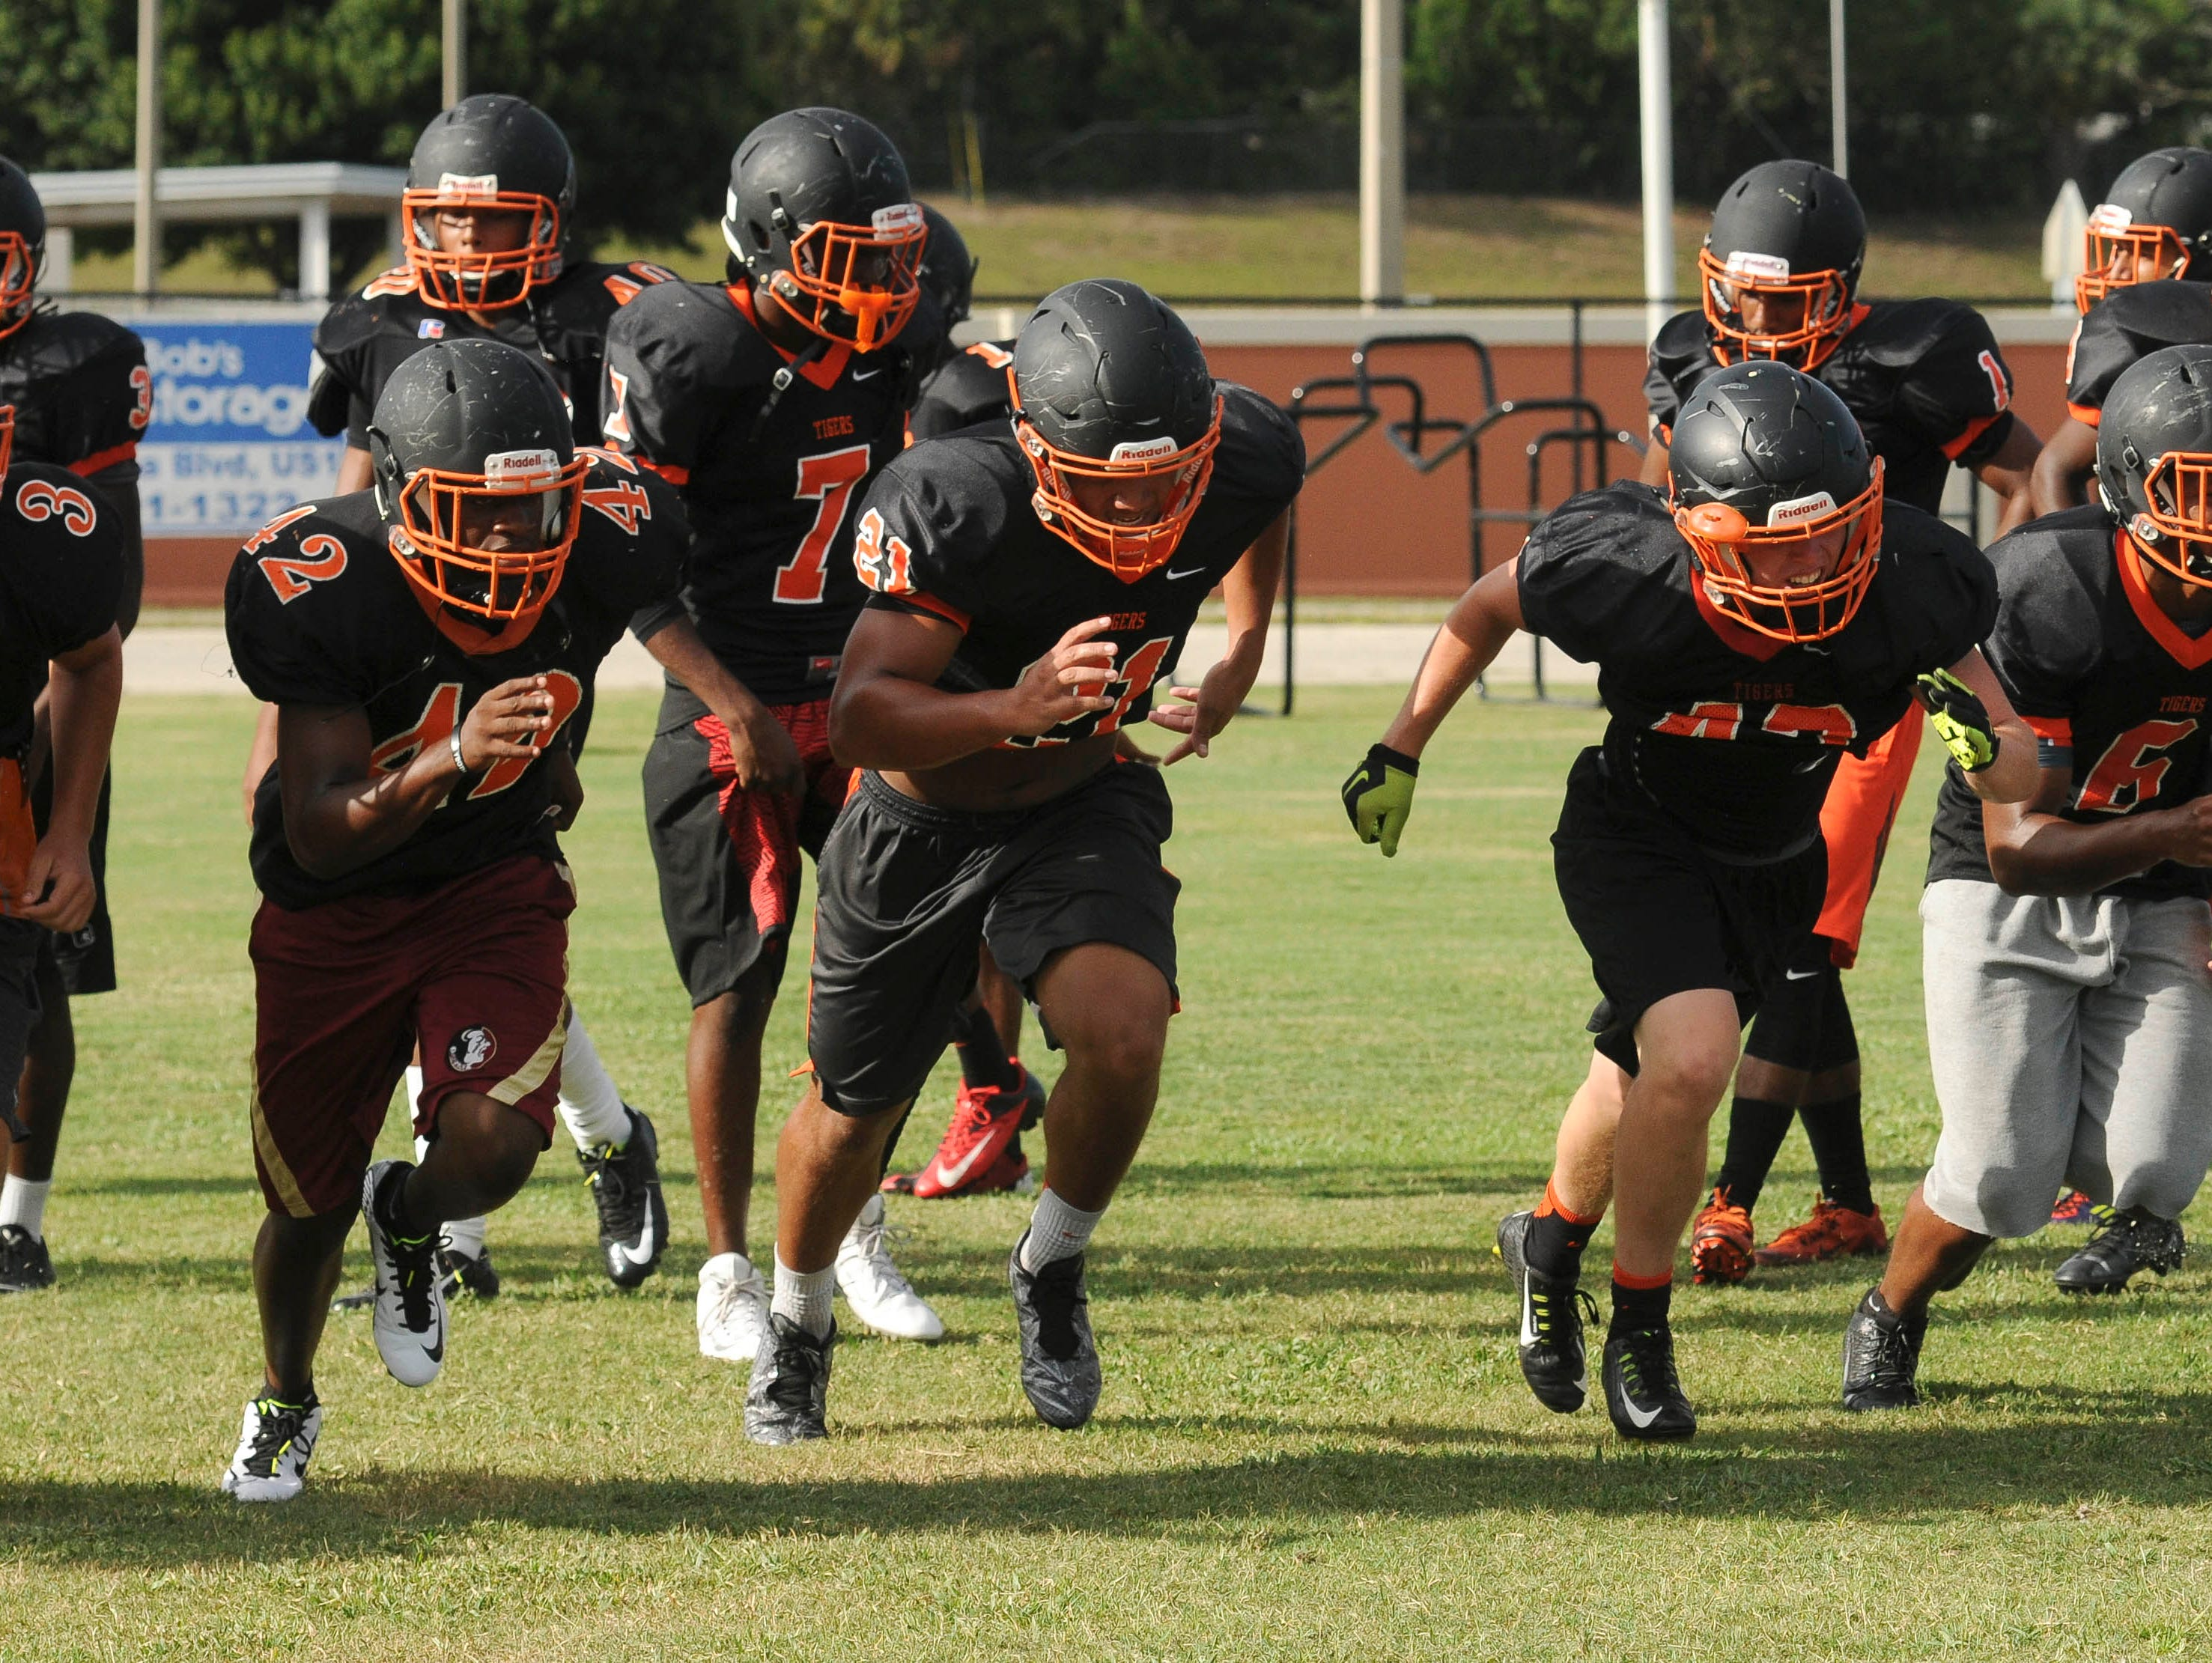 Football players at Cocoa High School run drills during practice Tuesday afternoon.